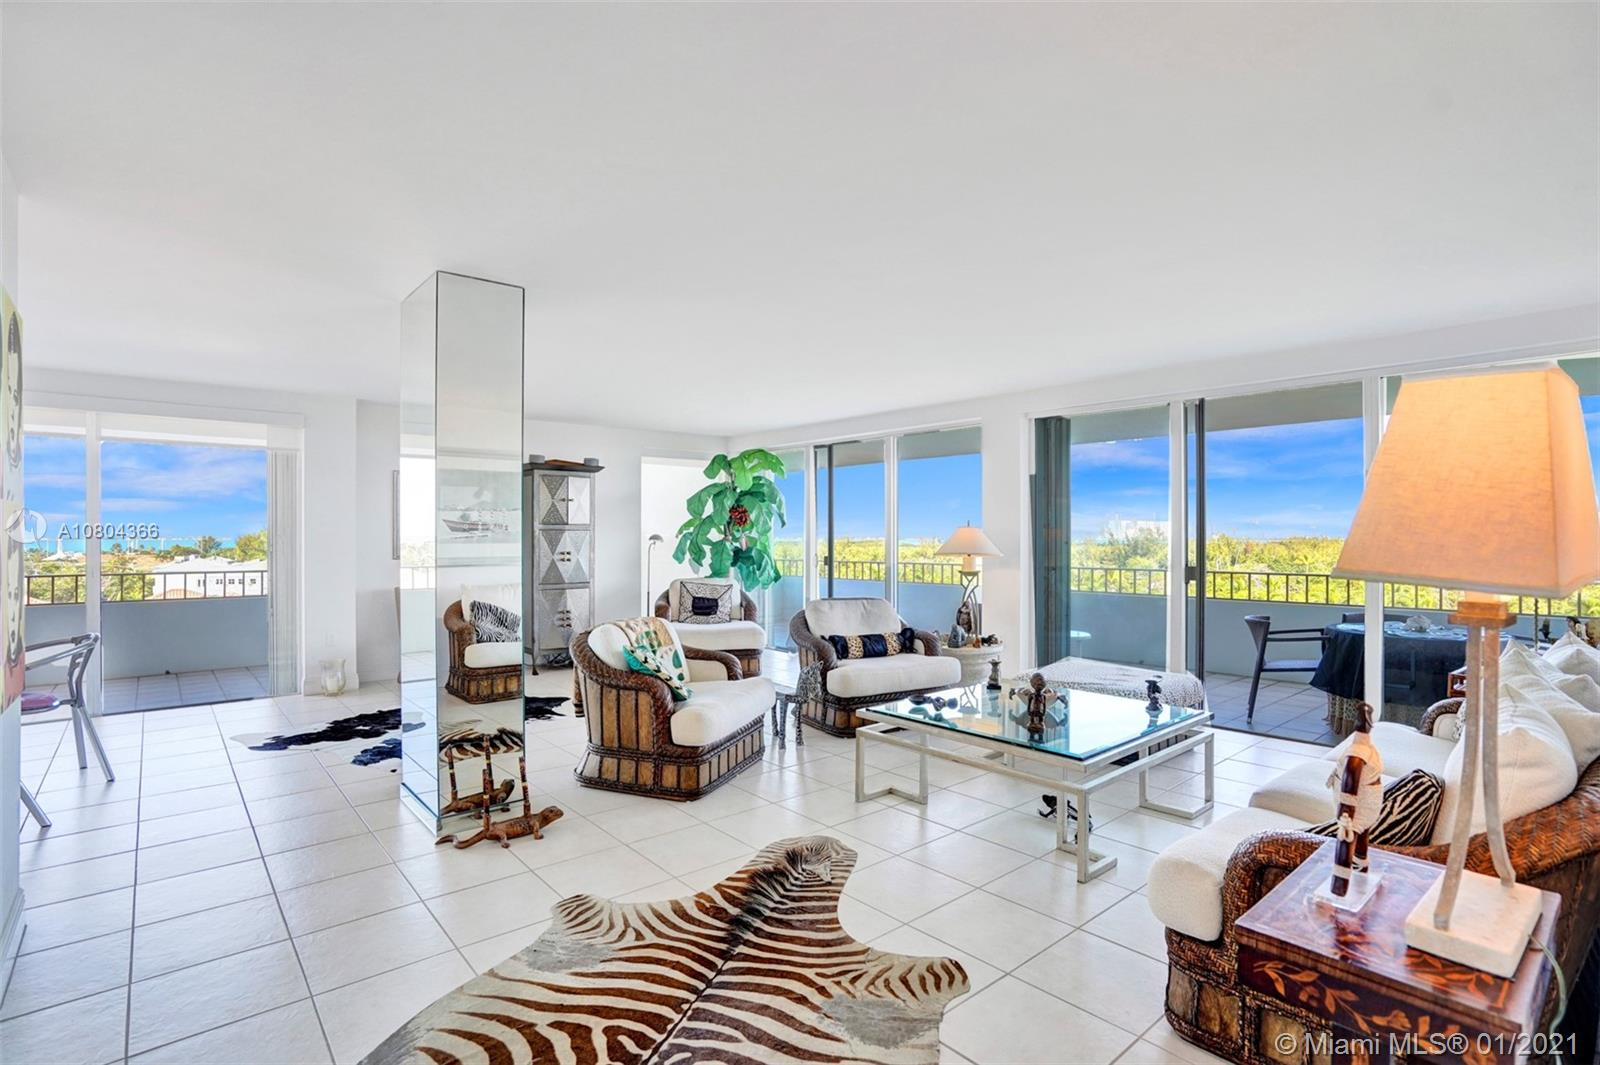 Commodore Club West #800 - 155 Ocean Lane Dr #800, Key Biscayne, FL 33149